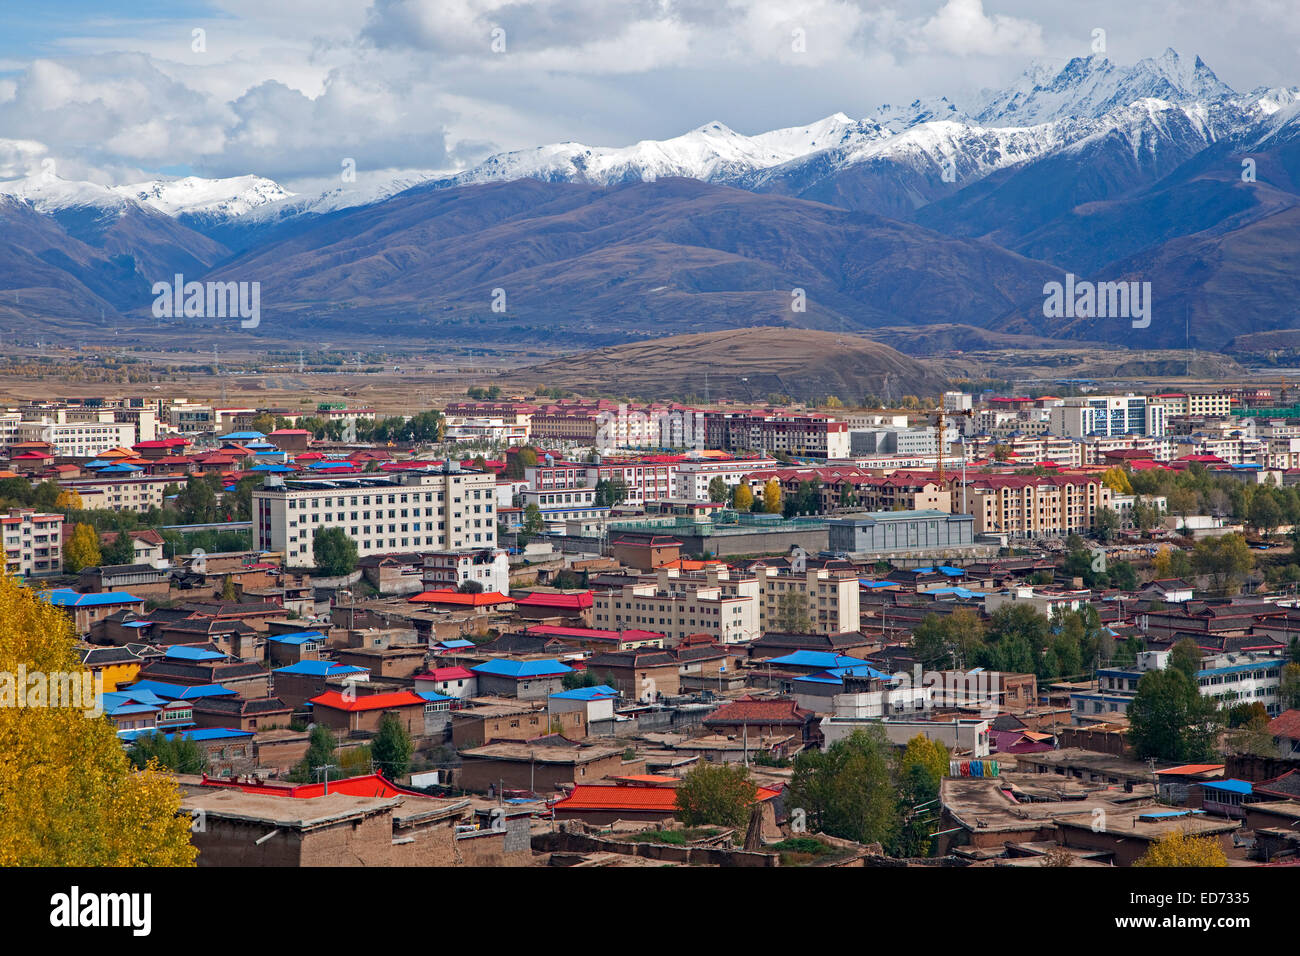 View over the Tibetan town Garze / Ganzi, Sichuan Province, China - Stock Image